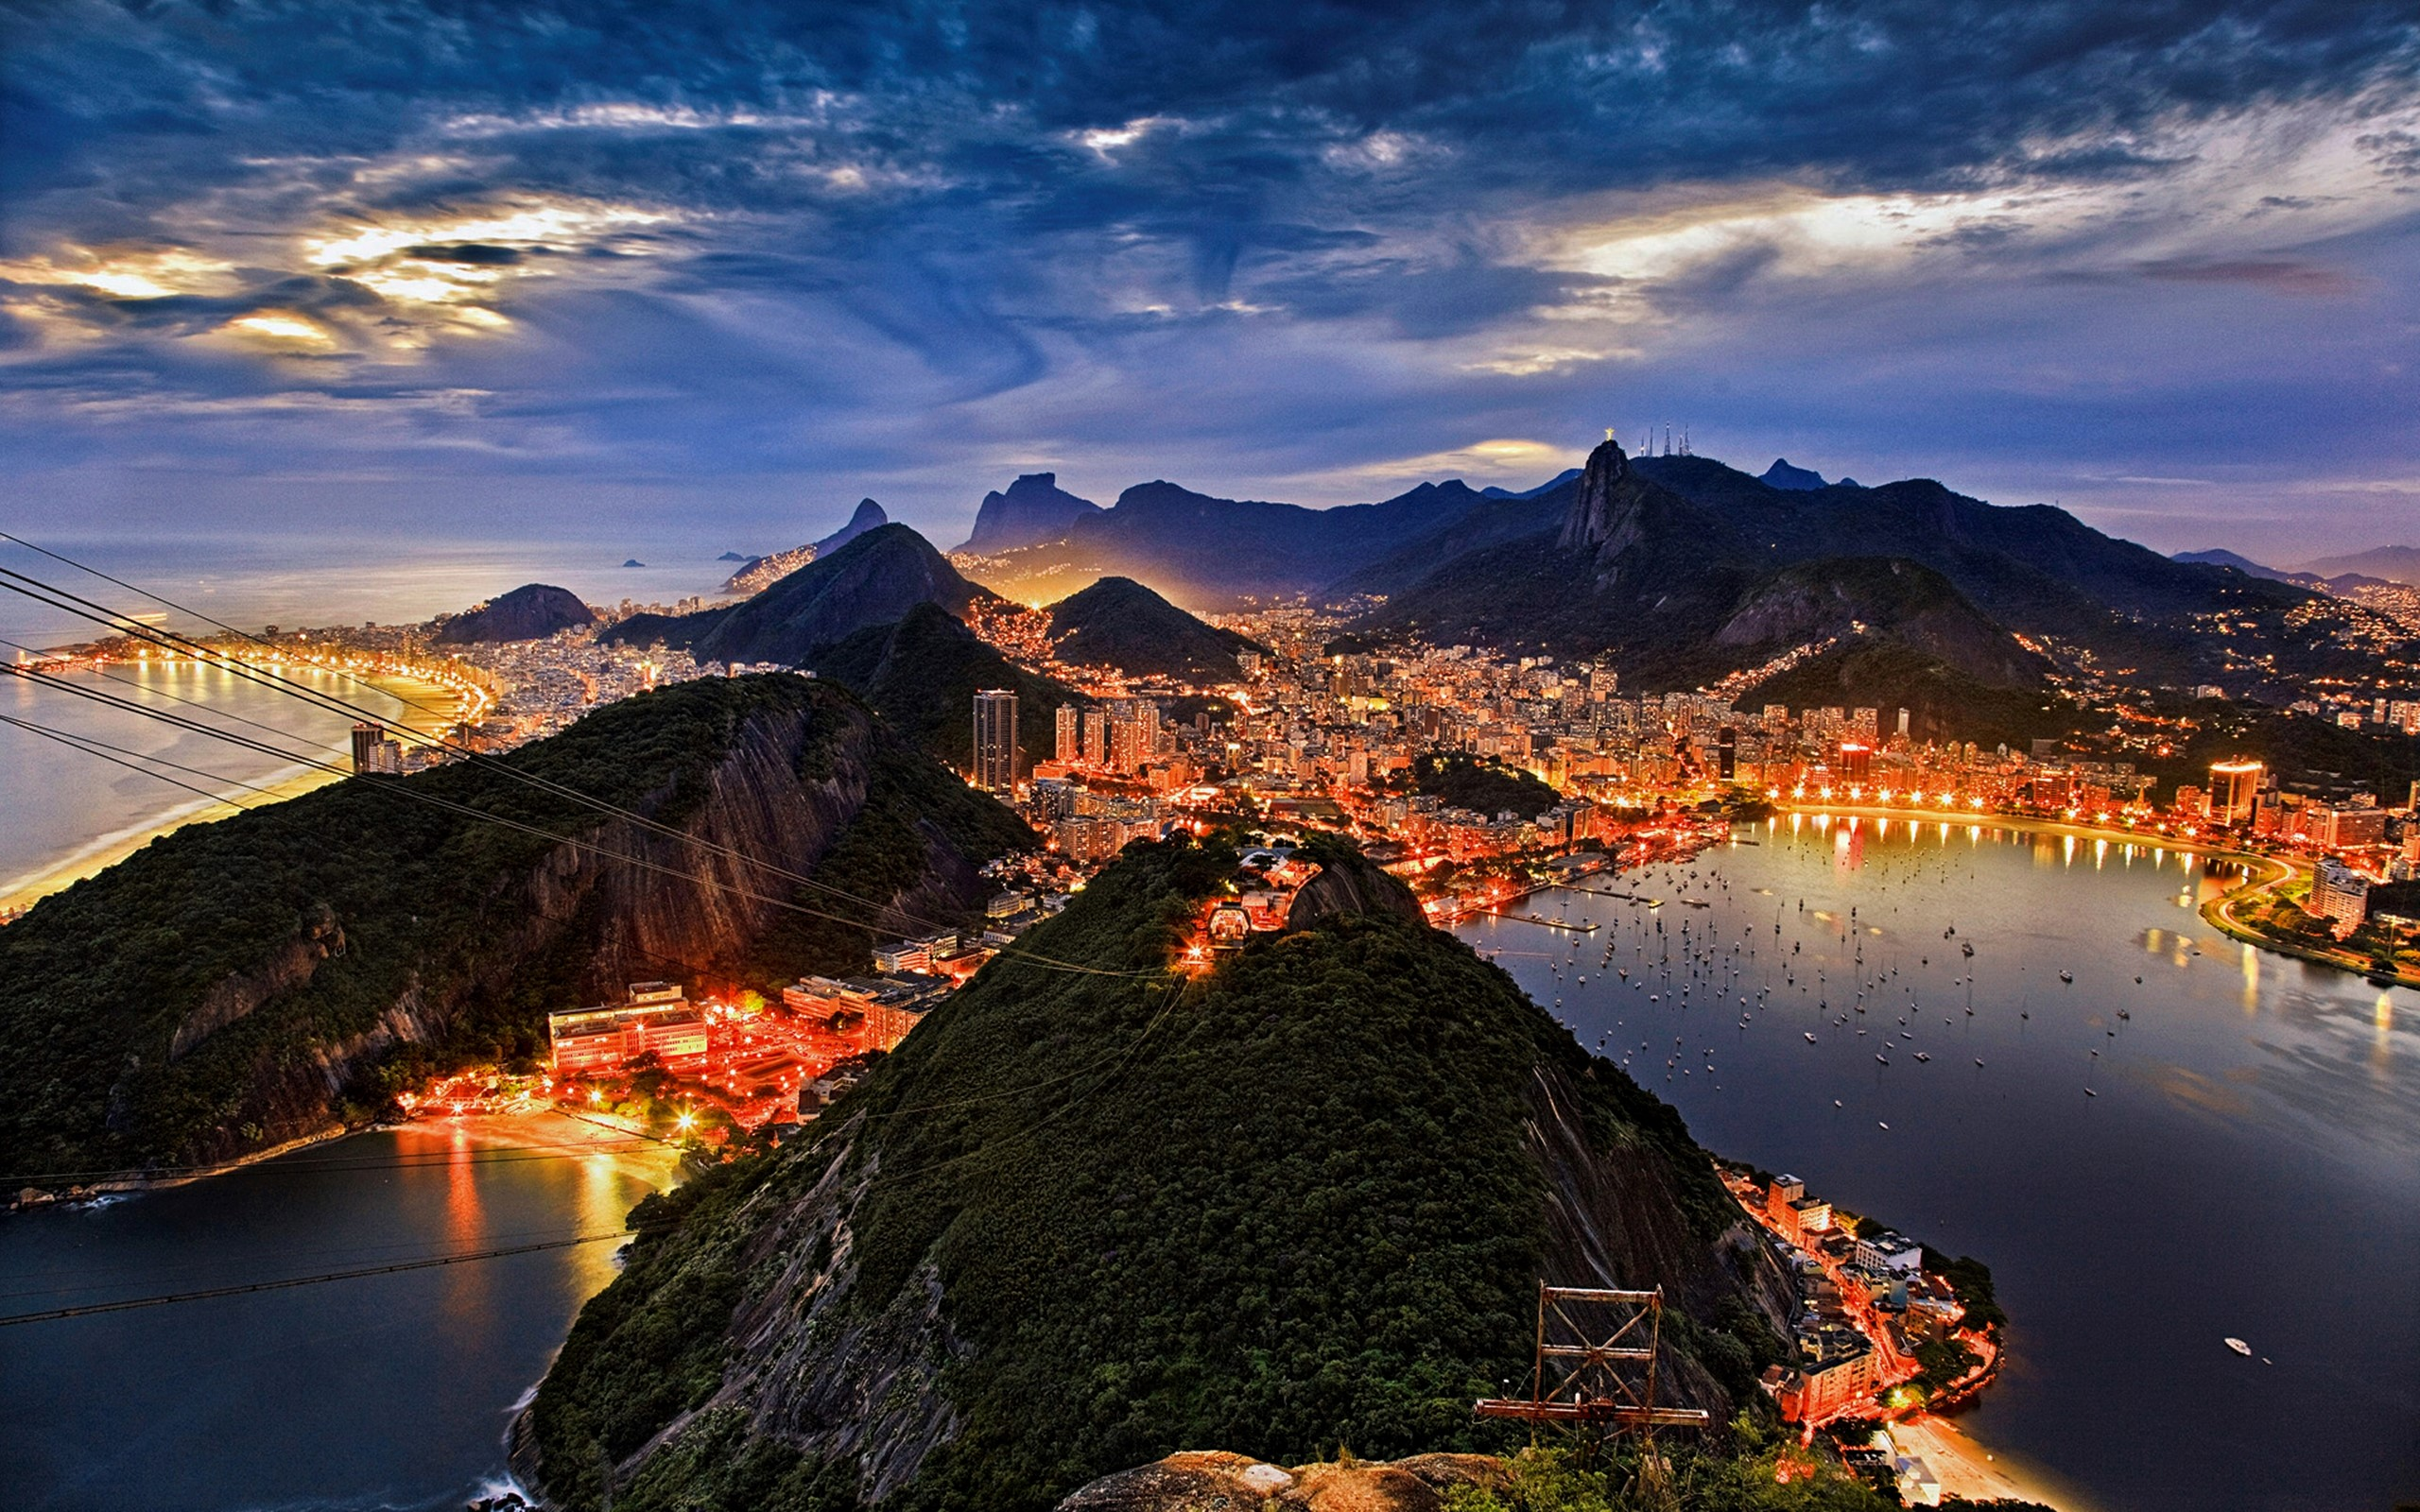 Rio De Janeiro At Night Hd Wallpaper Background Image